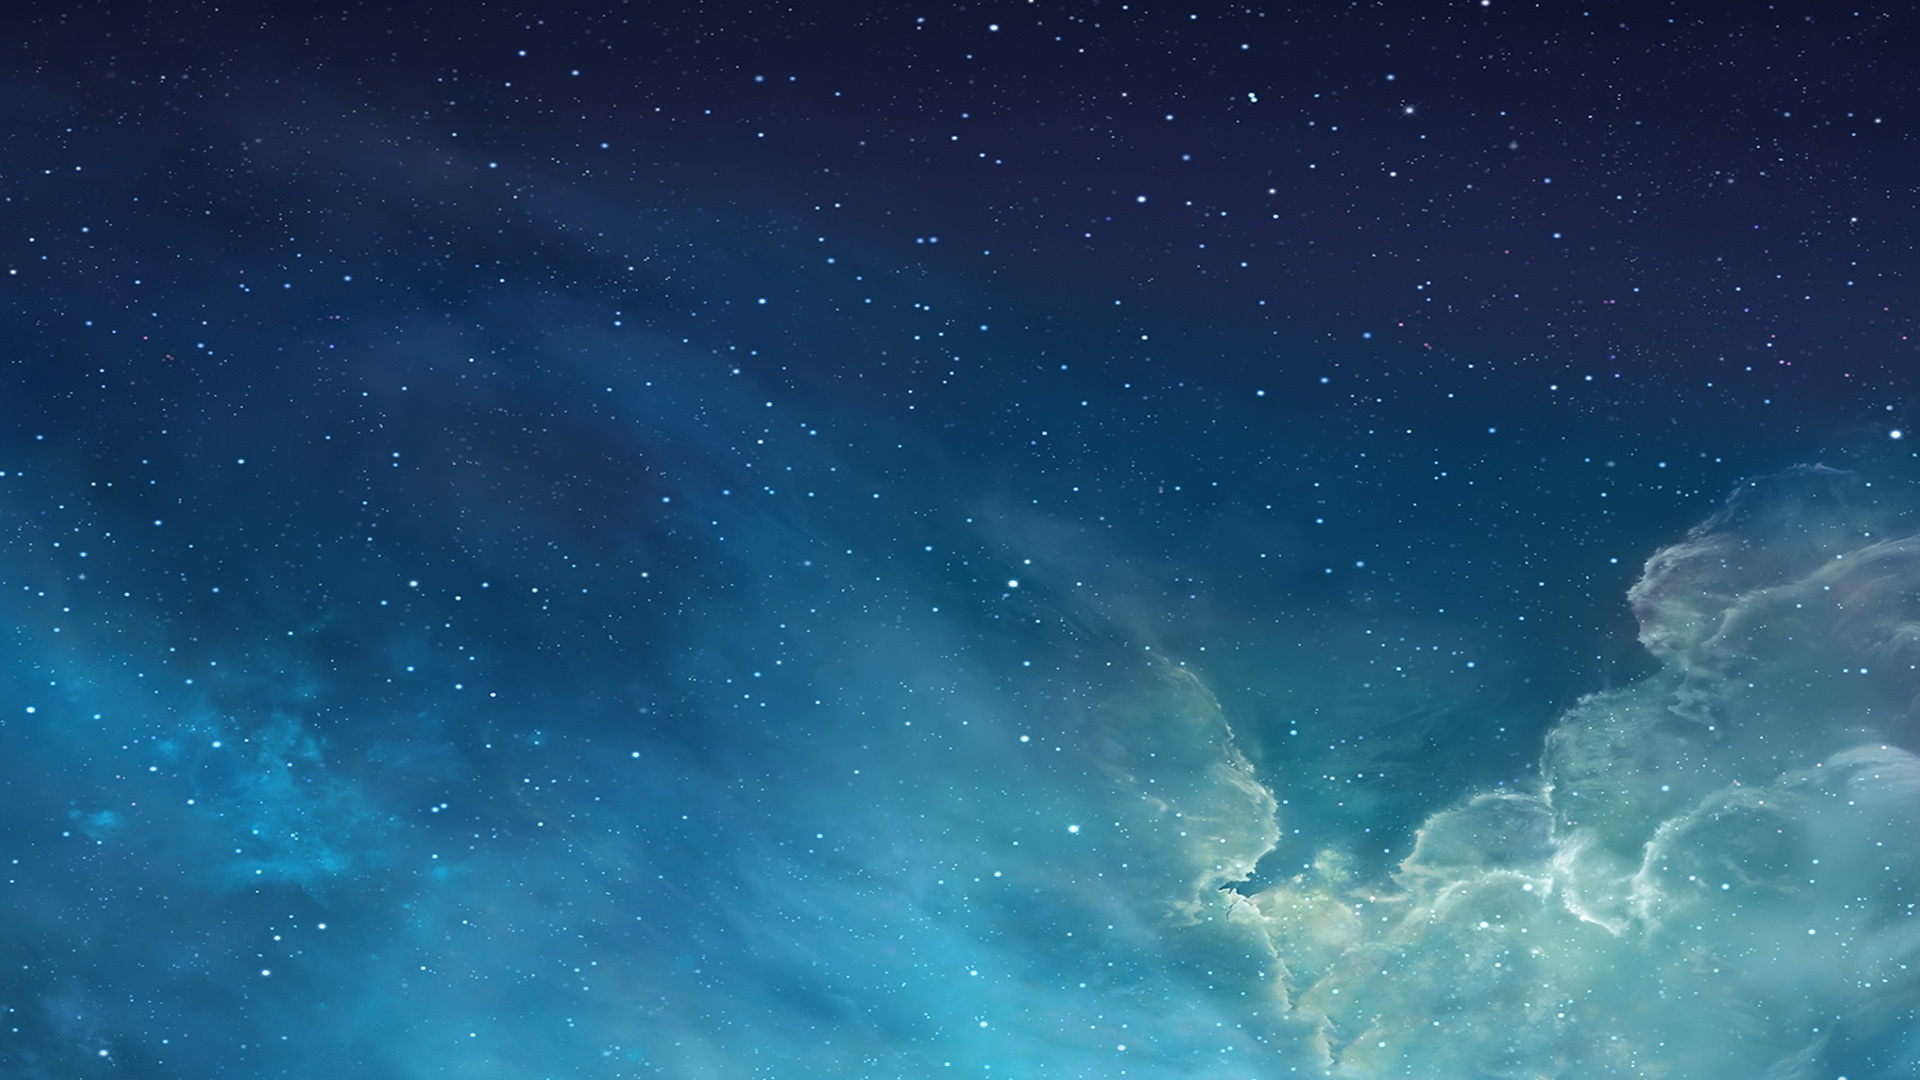 iOS 7 Galaxy Wallpapers HD Wallpapers 1920x1080